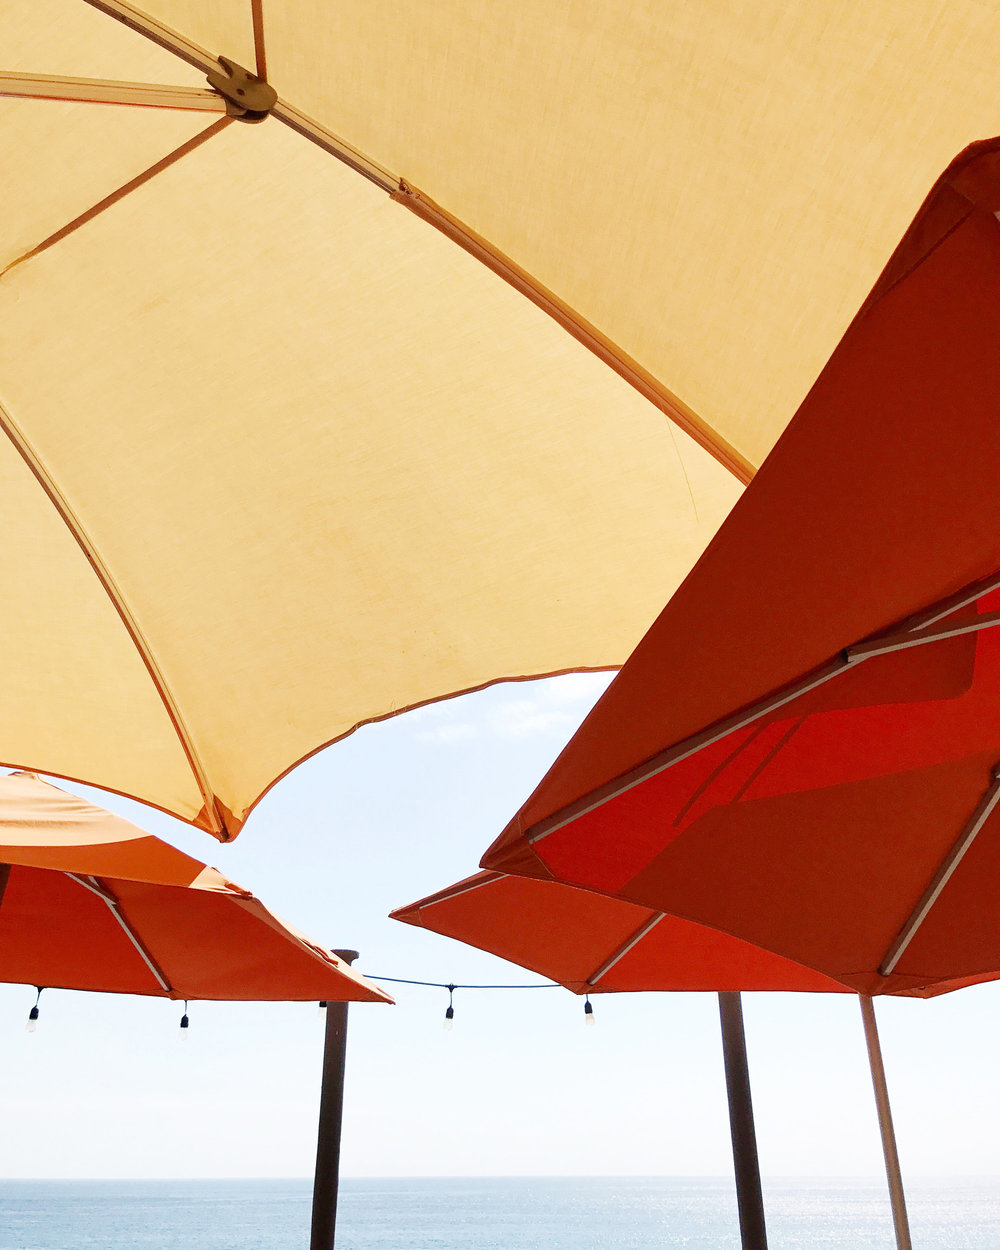 Umbrellas at Pueblo Bonito Sunset Beach, Mexico — Cotton Cashmere Cat Hair